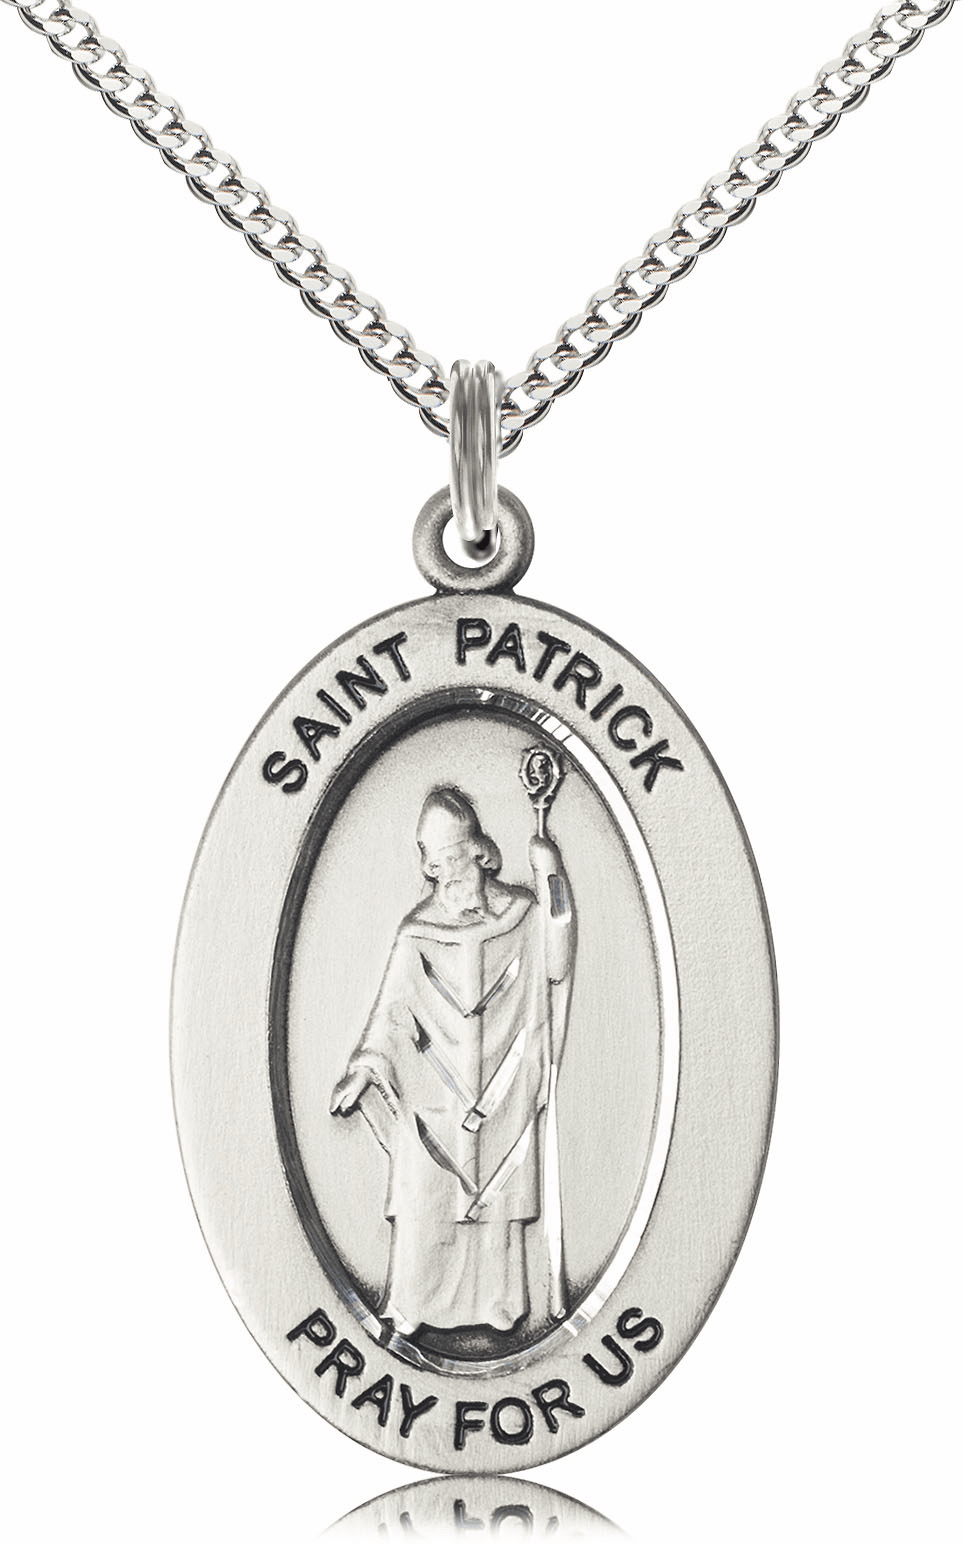 Bliss Mfg Saint Patrick Sterling Silver Medal Necklace w/Chain